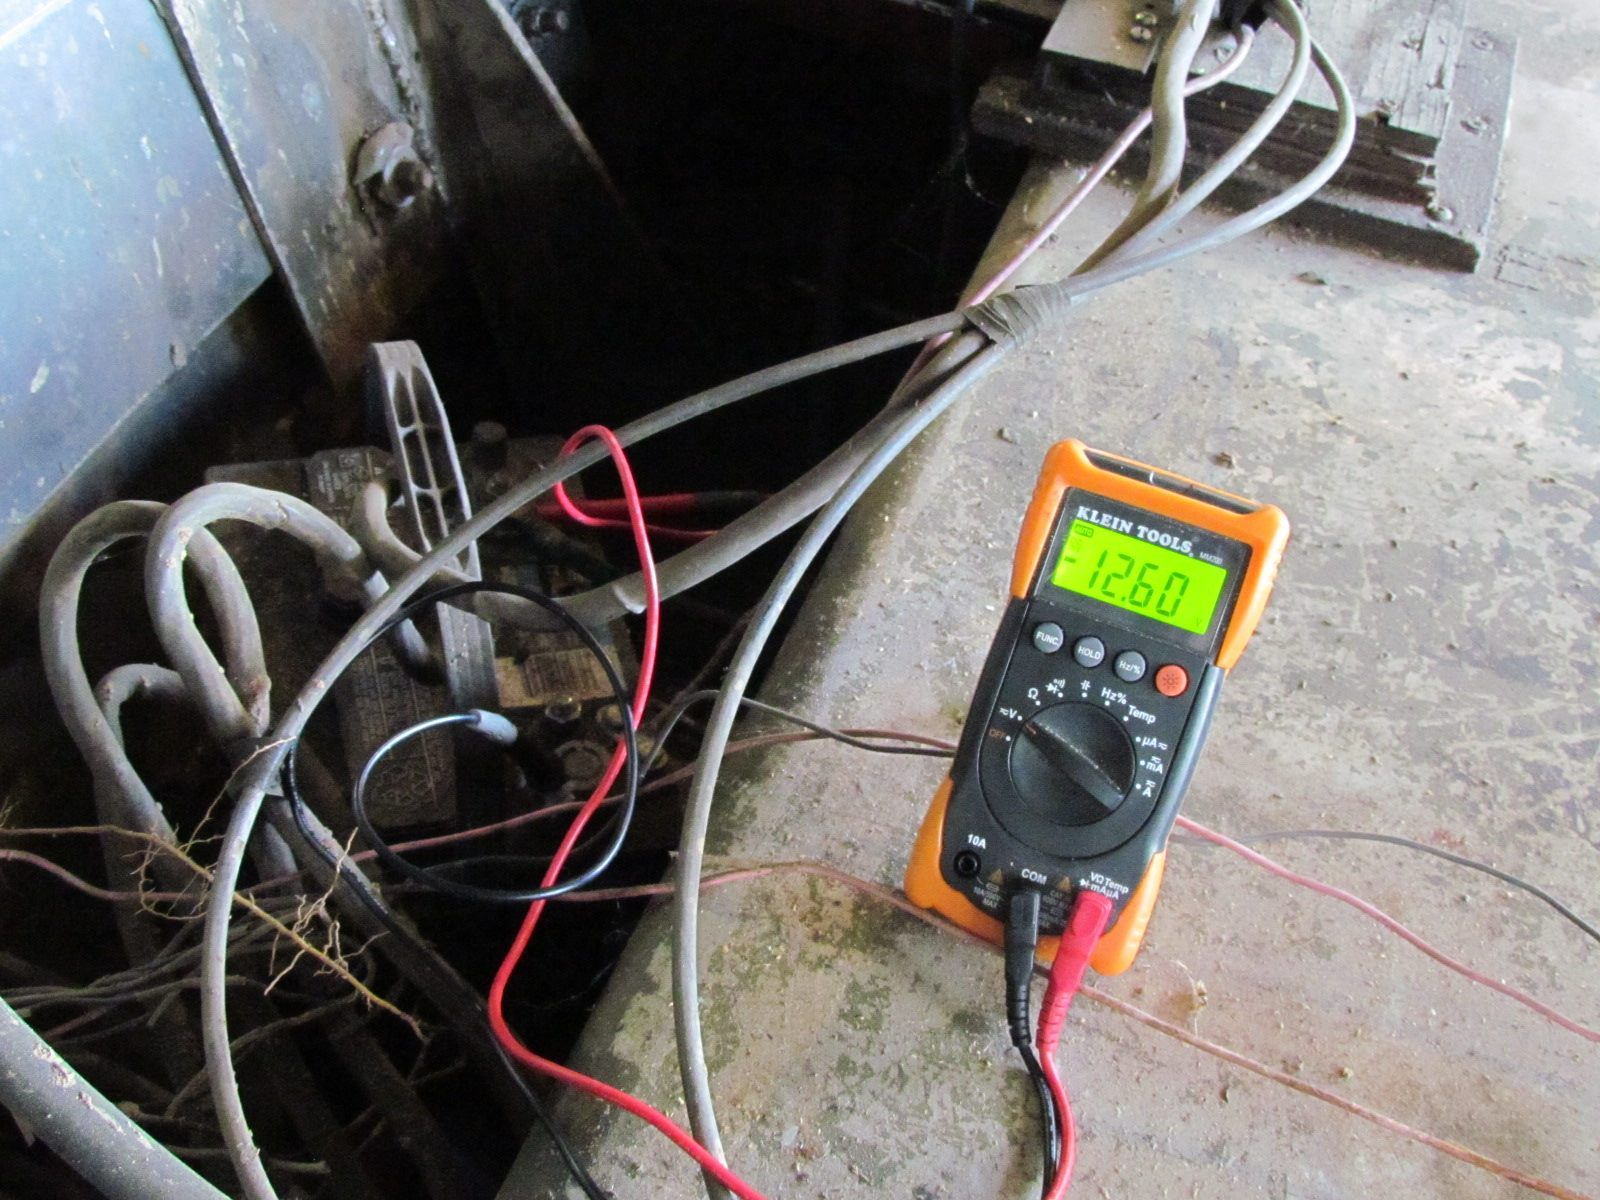 TO CHECK OUTBOARD AND AUTO CHARGING SYSTEM   Boat Outboards Charging